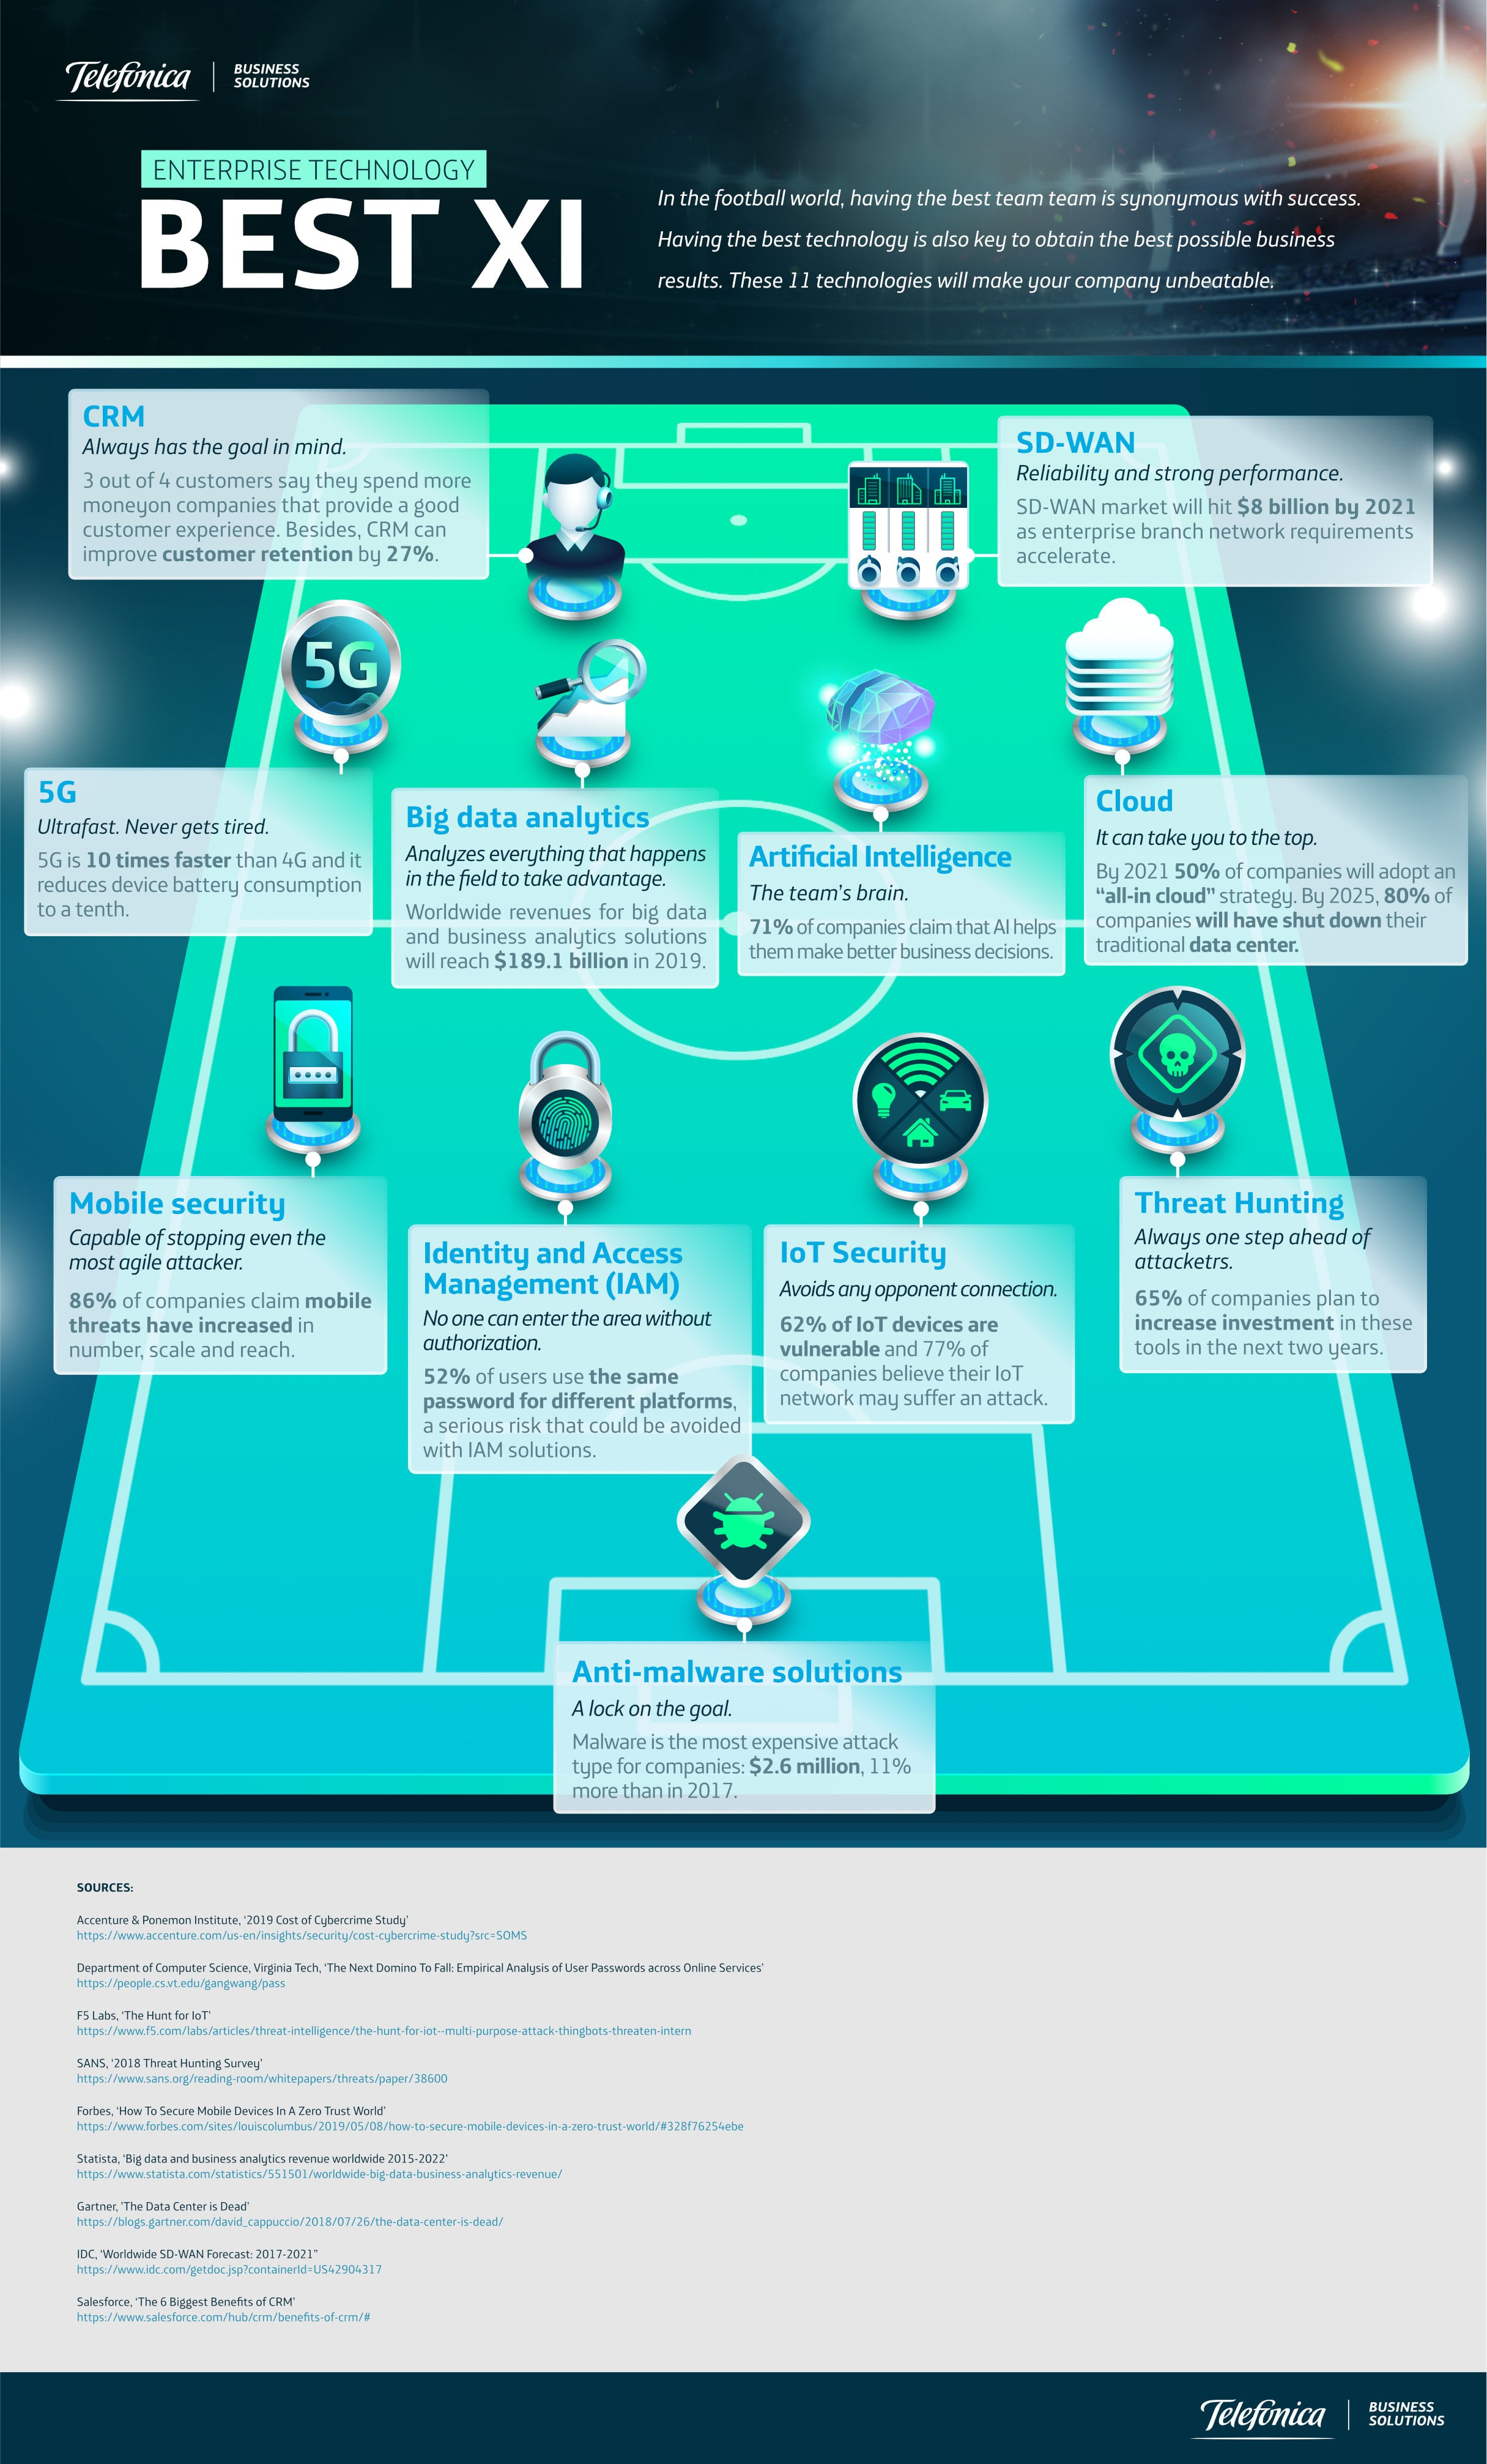 Enterprise technology best XI